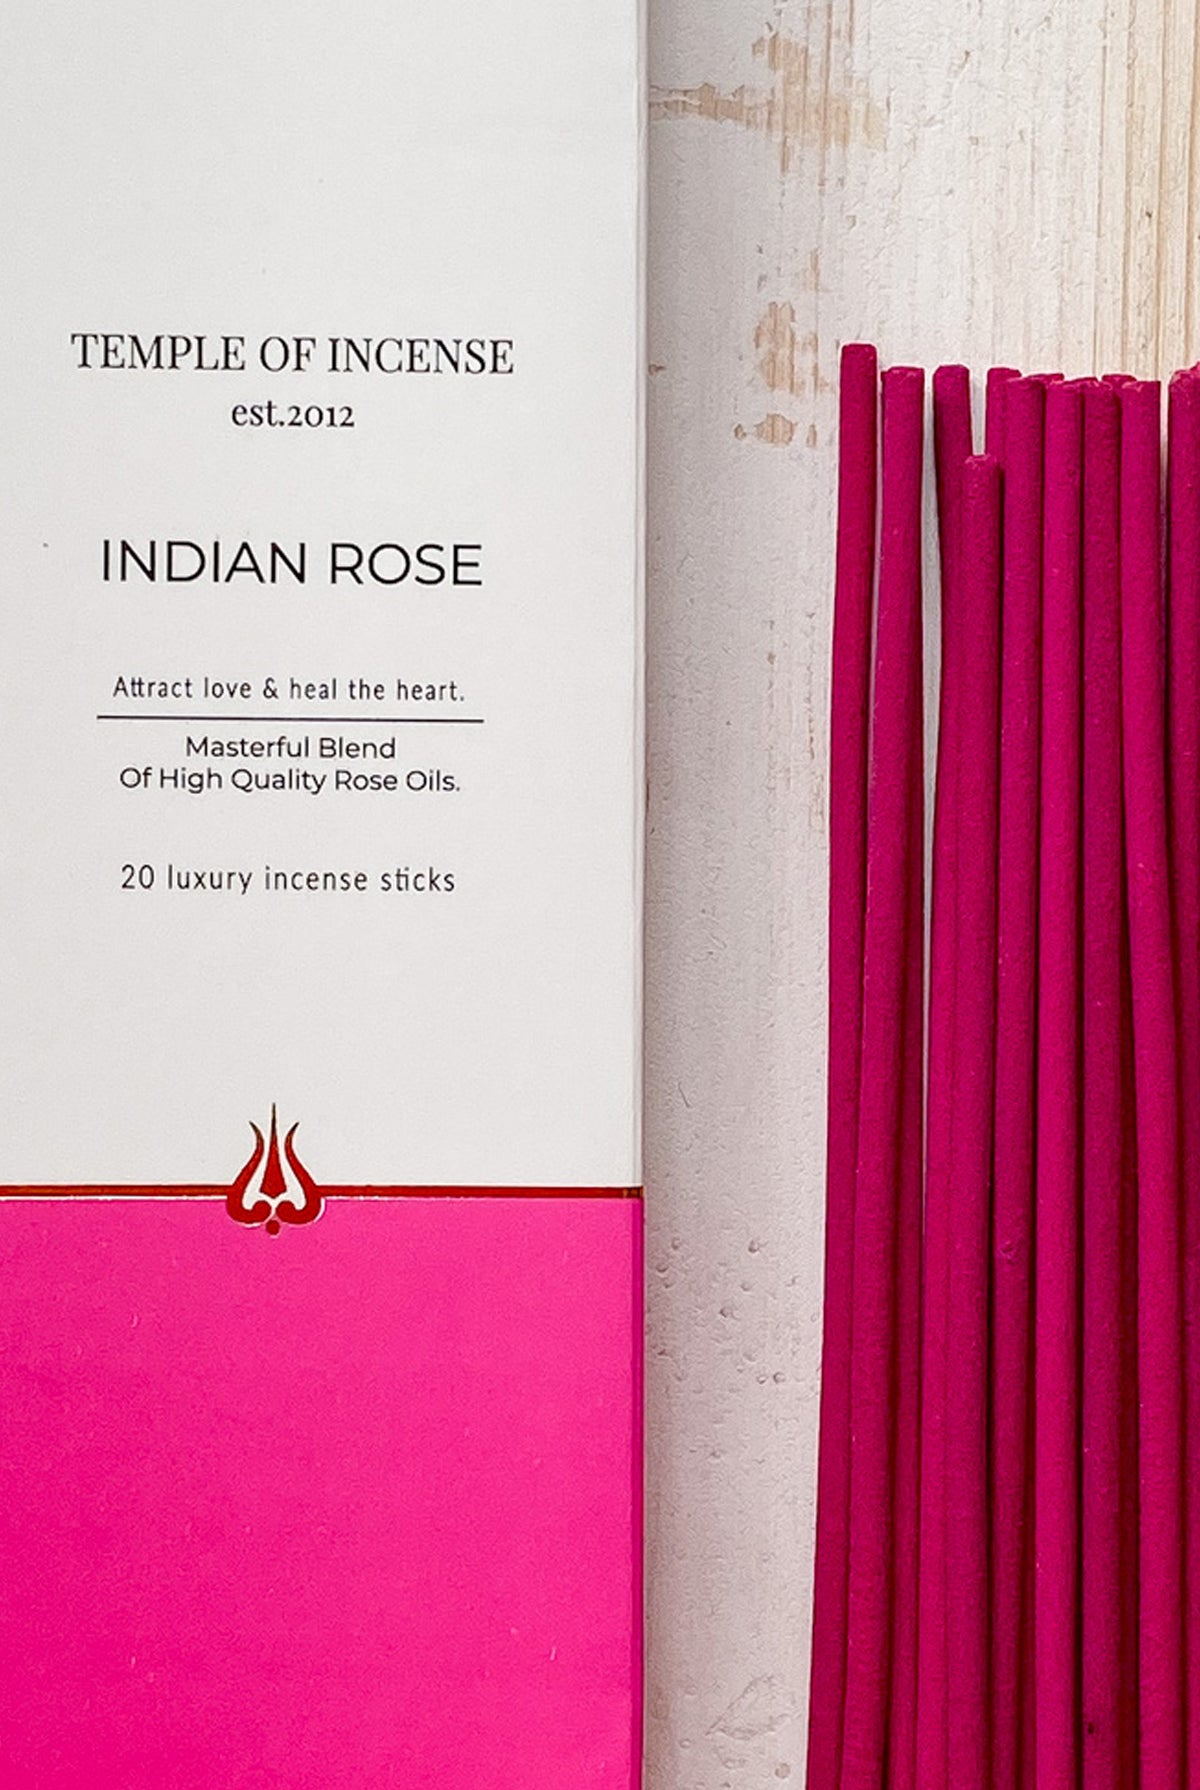 Temple of Incense Indian Rose Incense Sticks - One Size